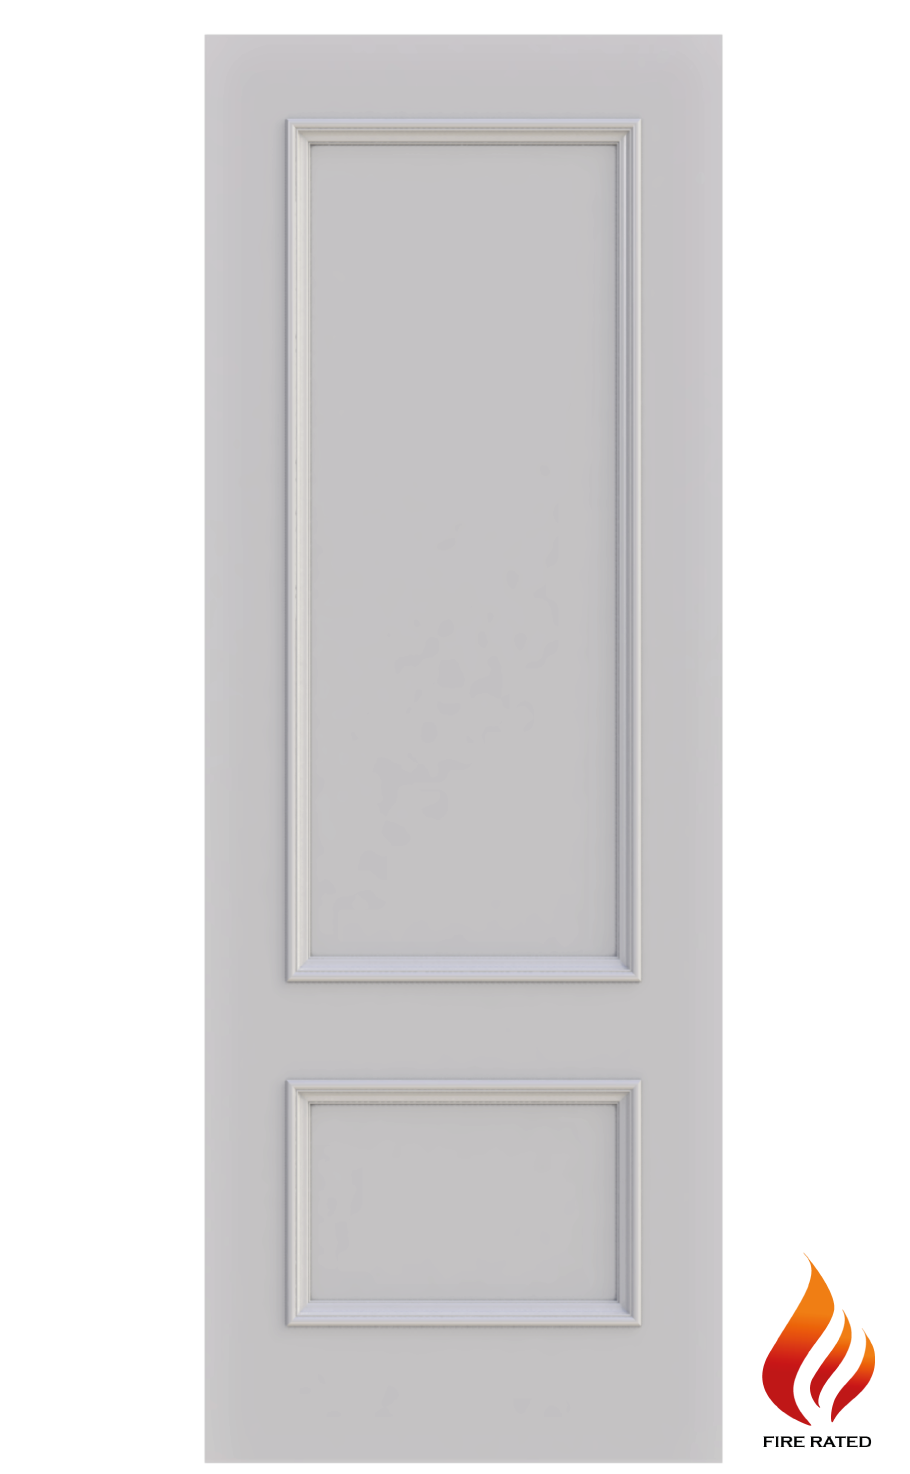 shaker door xl obscure with internal pair shker pane glass fire obs rated hour oak doors